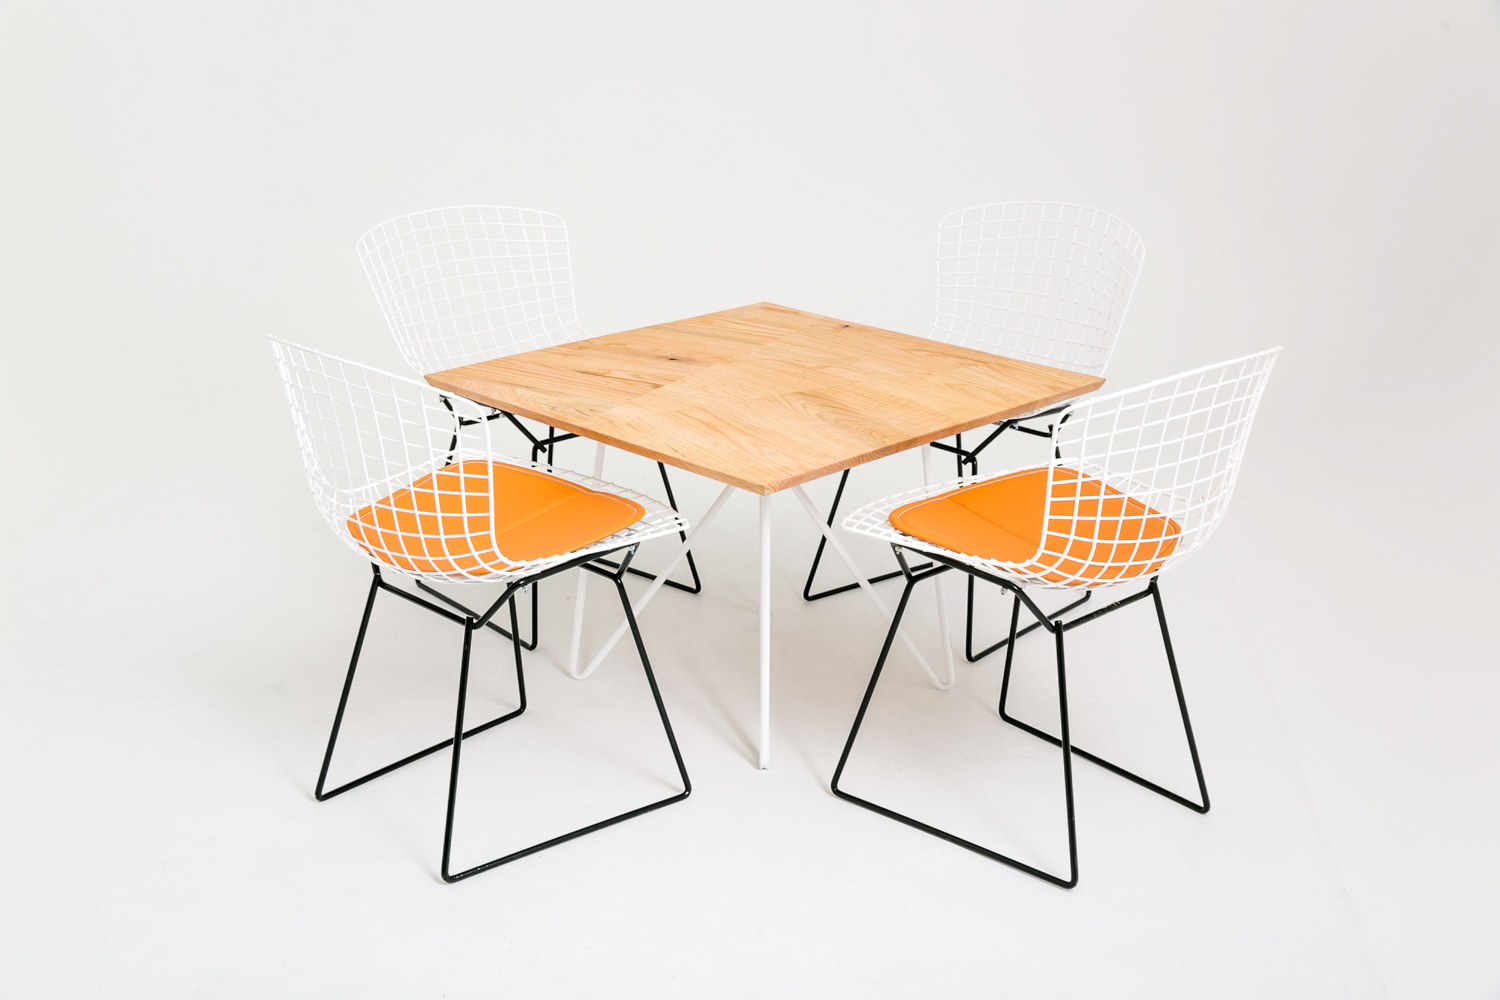 M Table w/ Wire Chairs